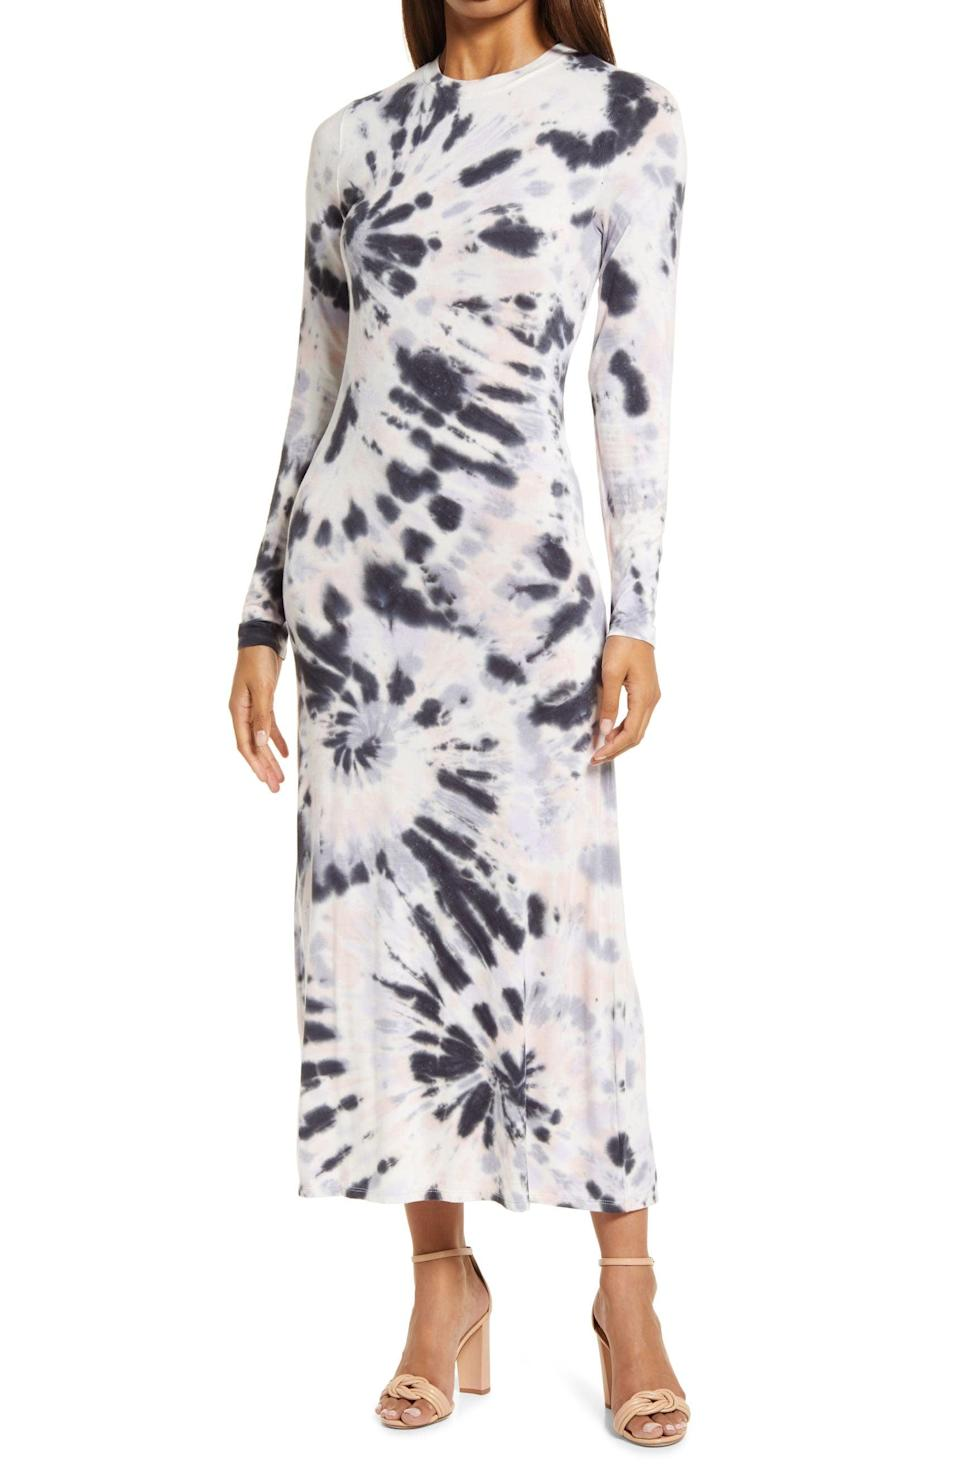 <p>This figure-skimming <span>Fourteenth Place Tie Dye Long Sleeve Maxi Dress</span> ($69) will make you look and feel fabulous. It's designed from a stretchy knit fabric, so rest assured you'll also be comfortable while wearing it.</p>